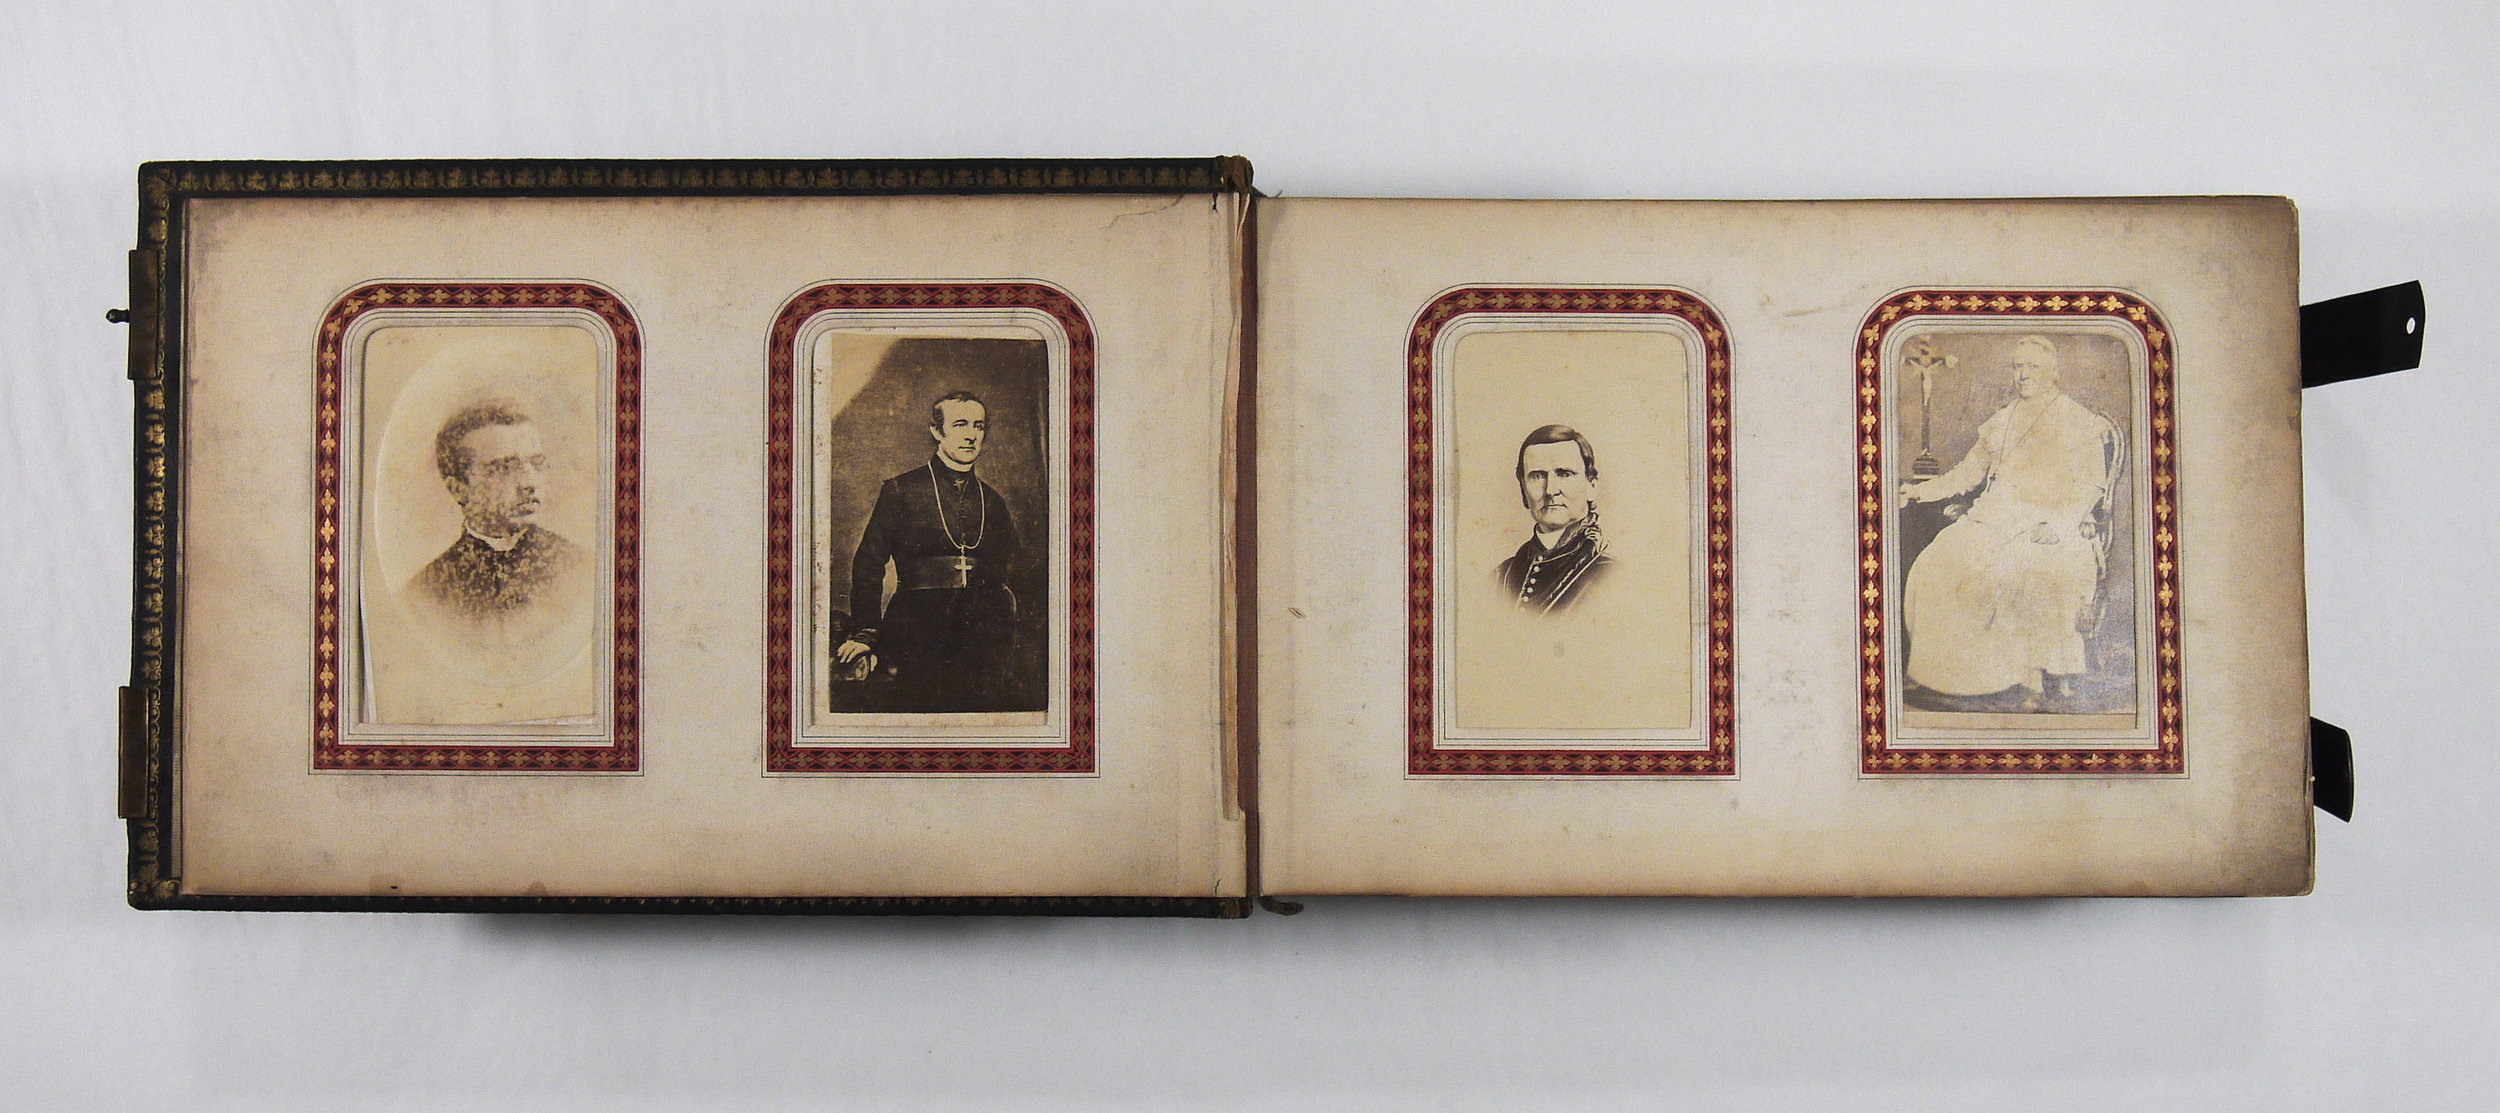 Bishop Crinnon carte de visite album, showing a spread of pages featuring portraits of clergy.